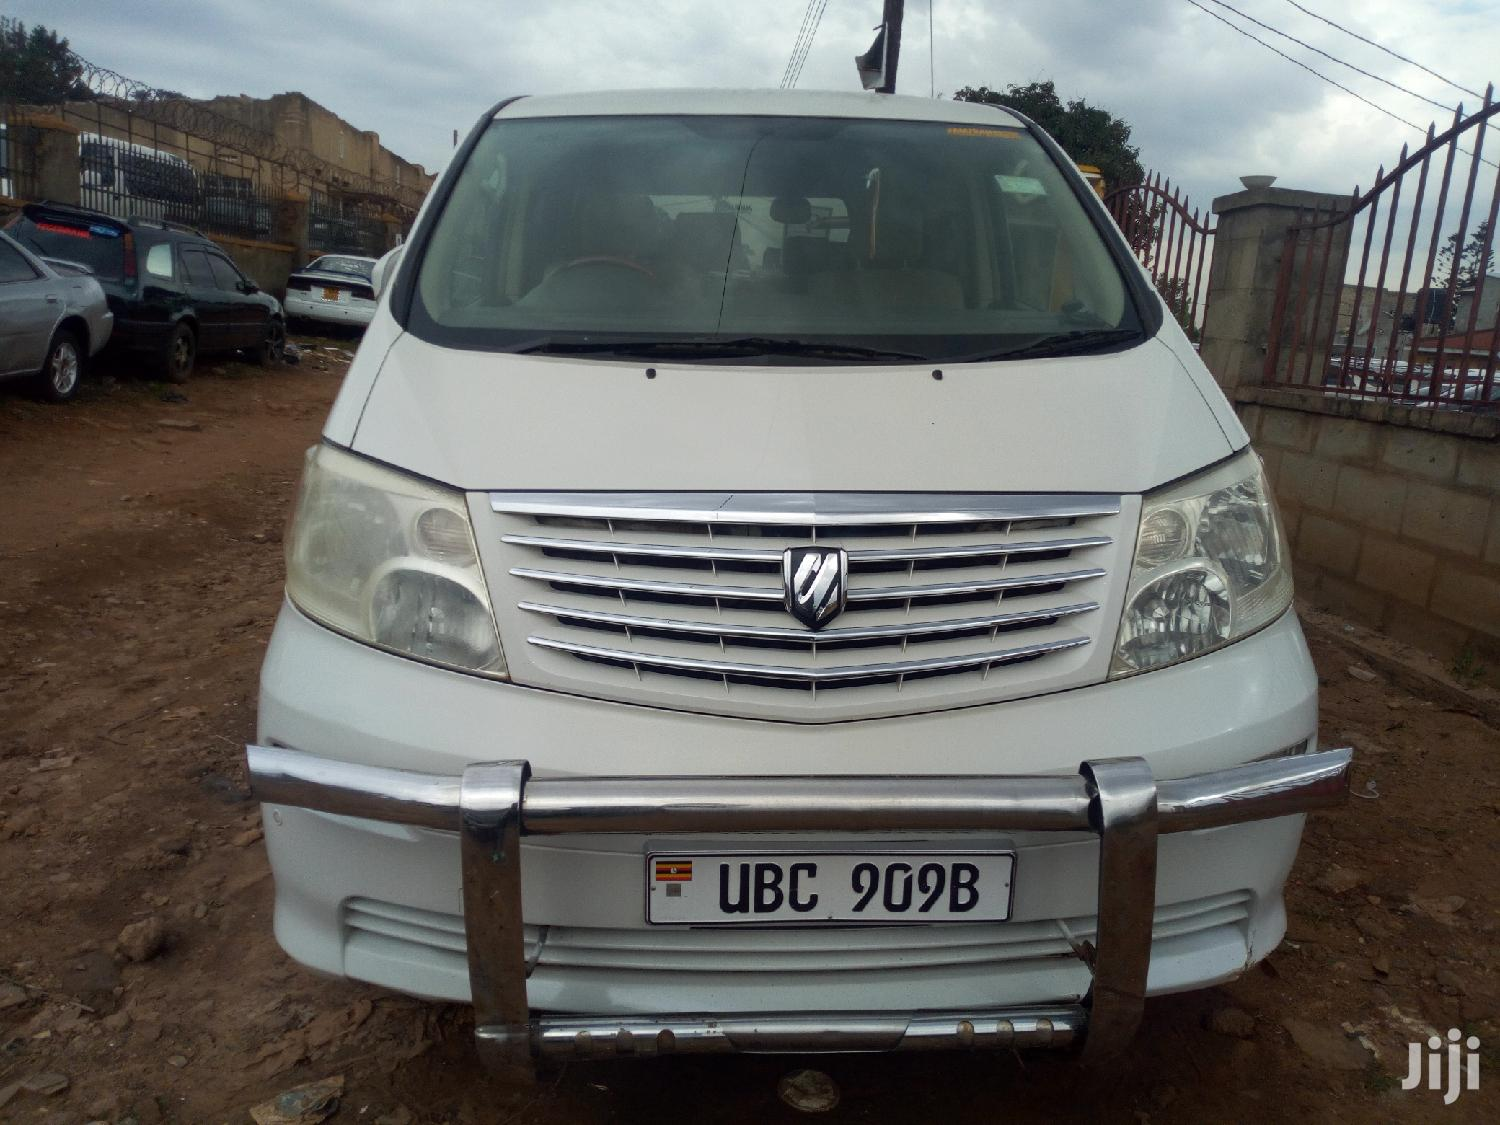 Toyota Alphard 2020 White | Cars for sale in Kampala, Central Region, Uganda